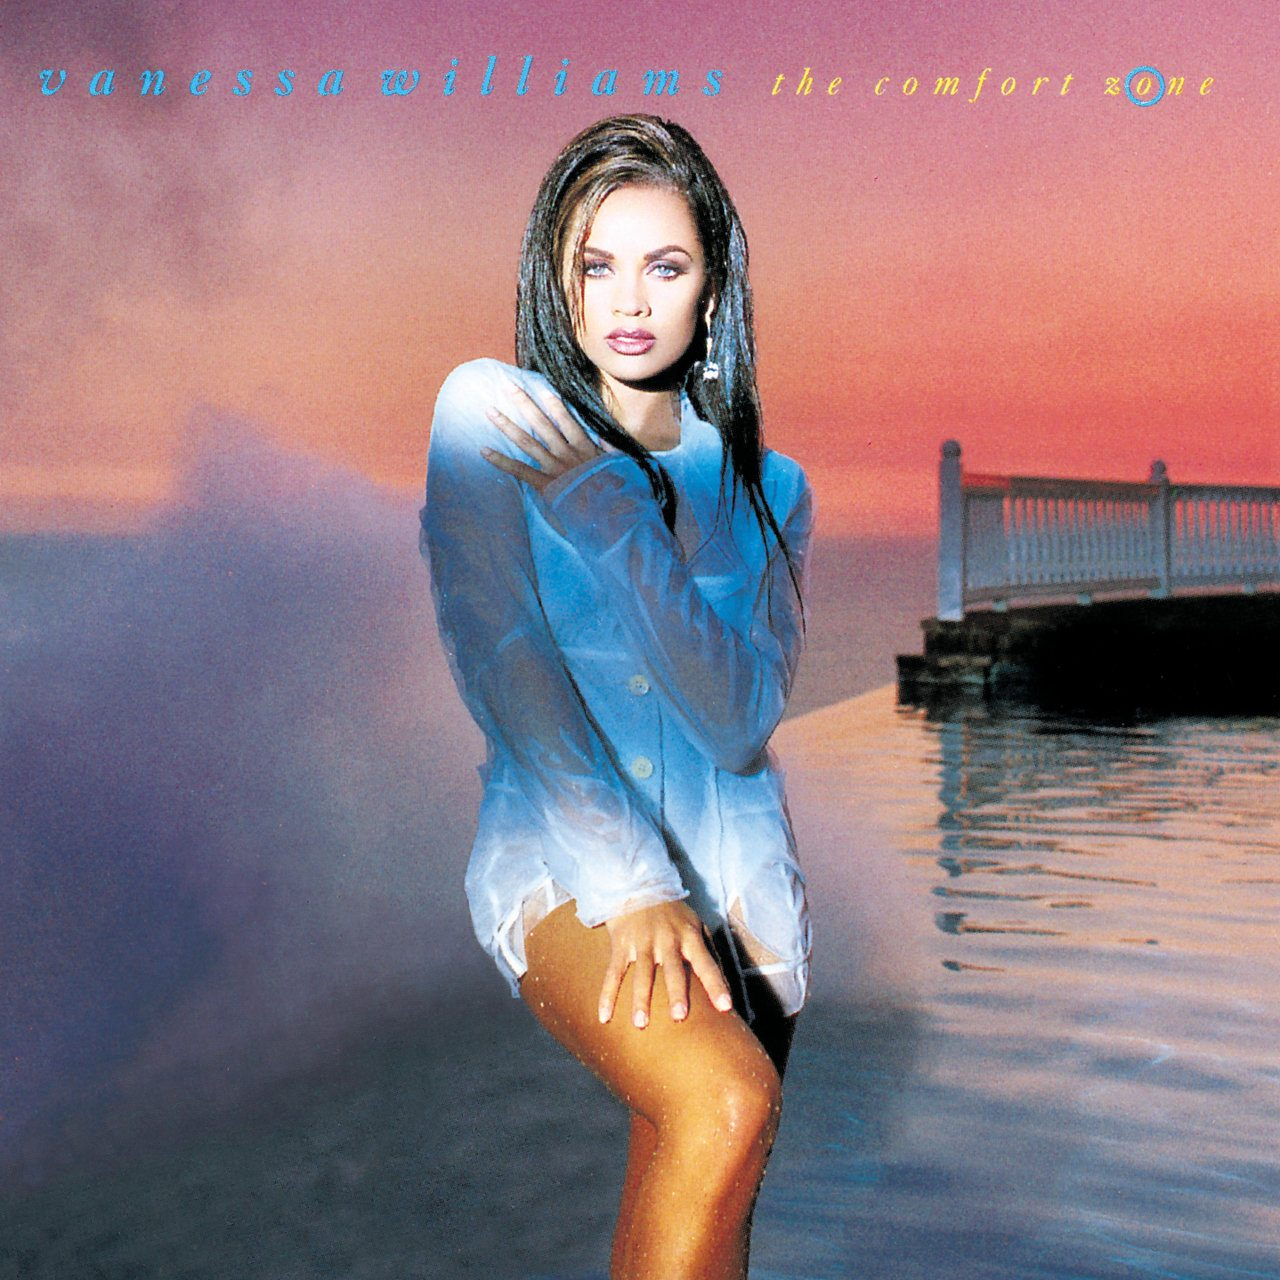 Vanessa Williams The Comfort Zone